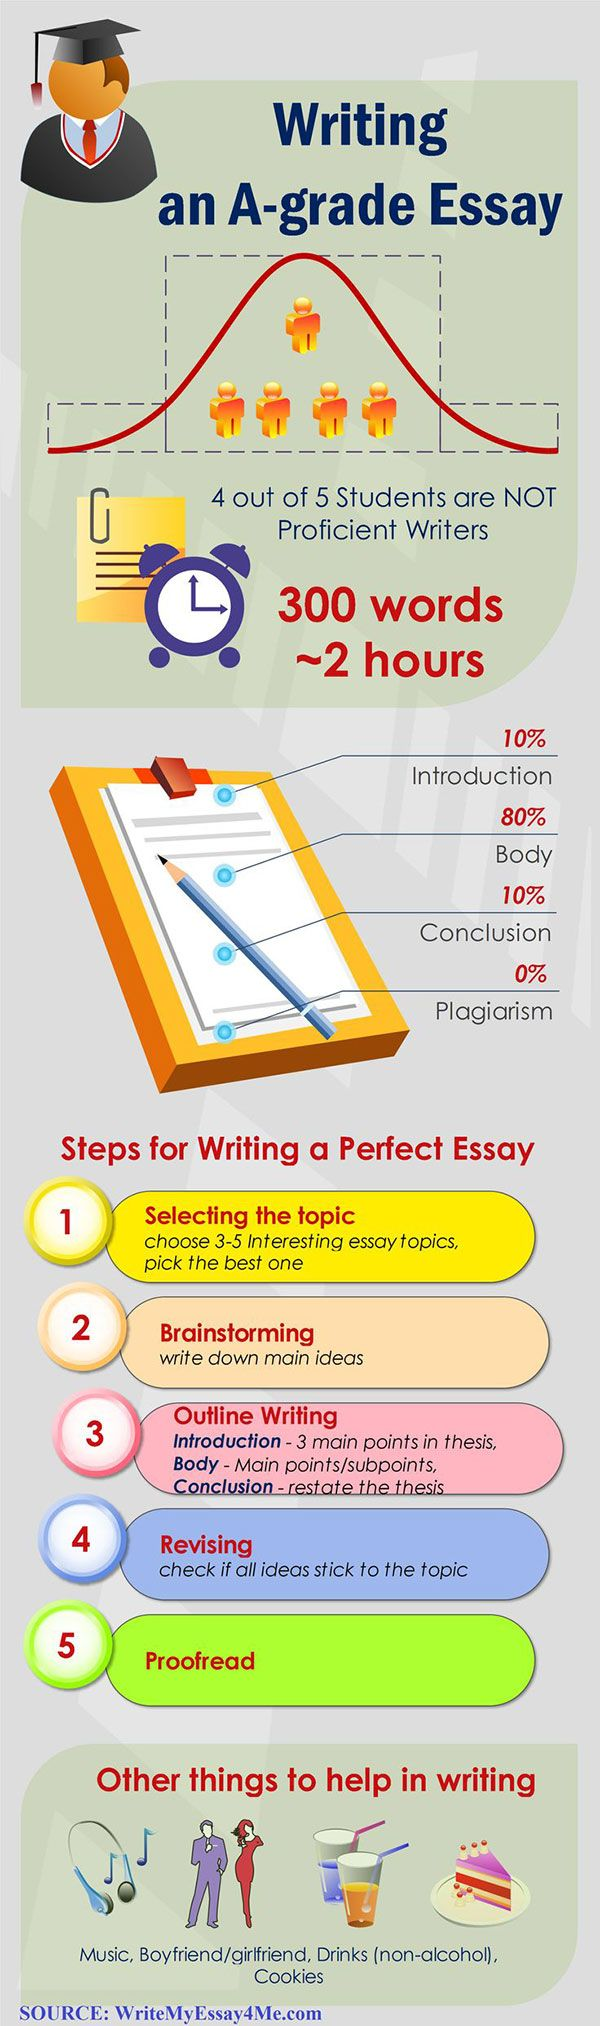 professional college essay editing sites for school my essay writer whenever you need a professional writing jfc